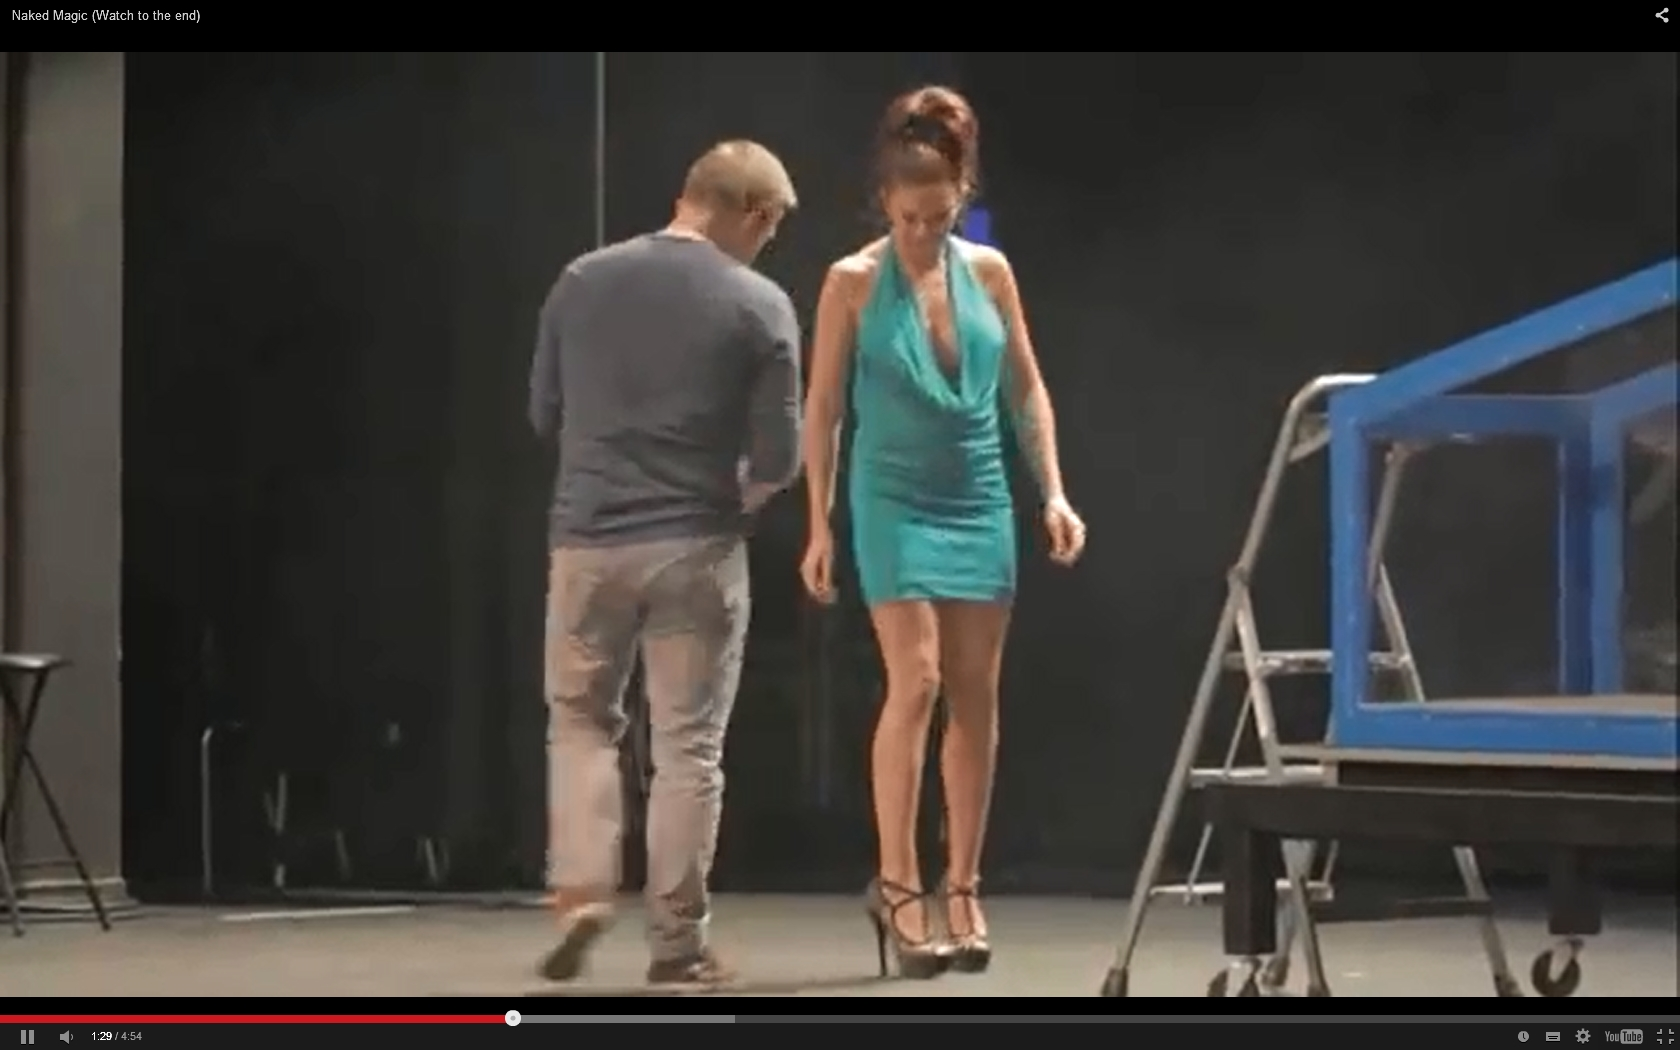 Magic Show Girl Ends Up Topless | Daily Girls @ Female Update